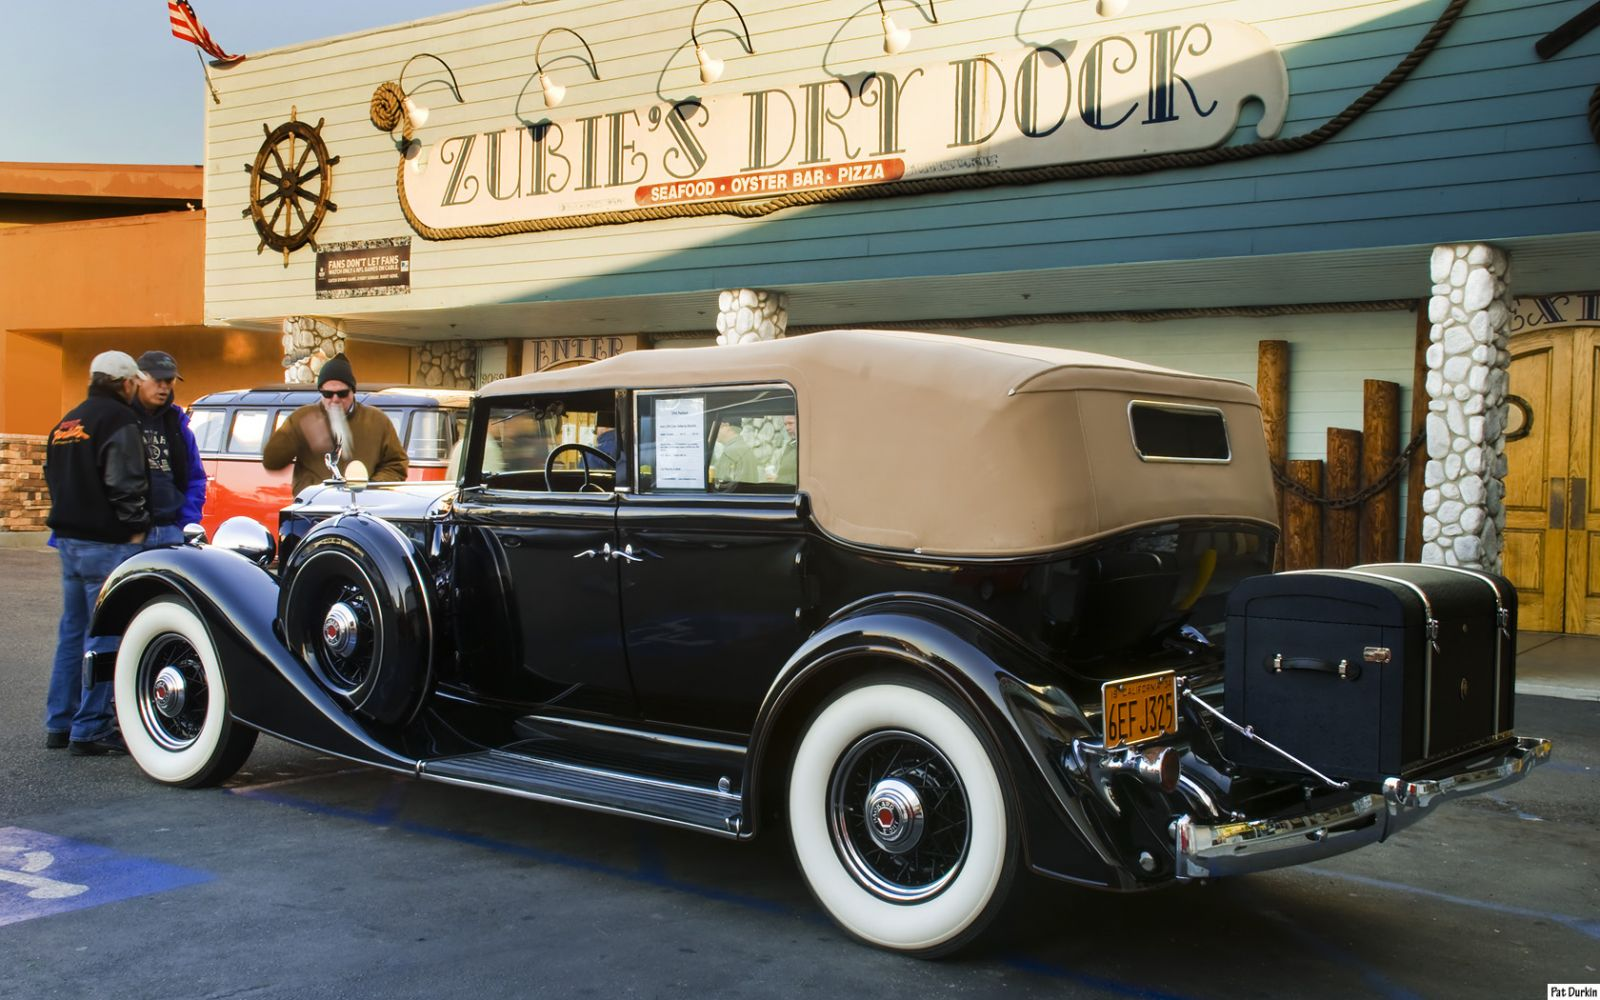 1934 Packard 1101 Convertible Sedan by Dietrich - black - rvl